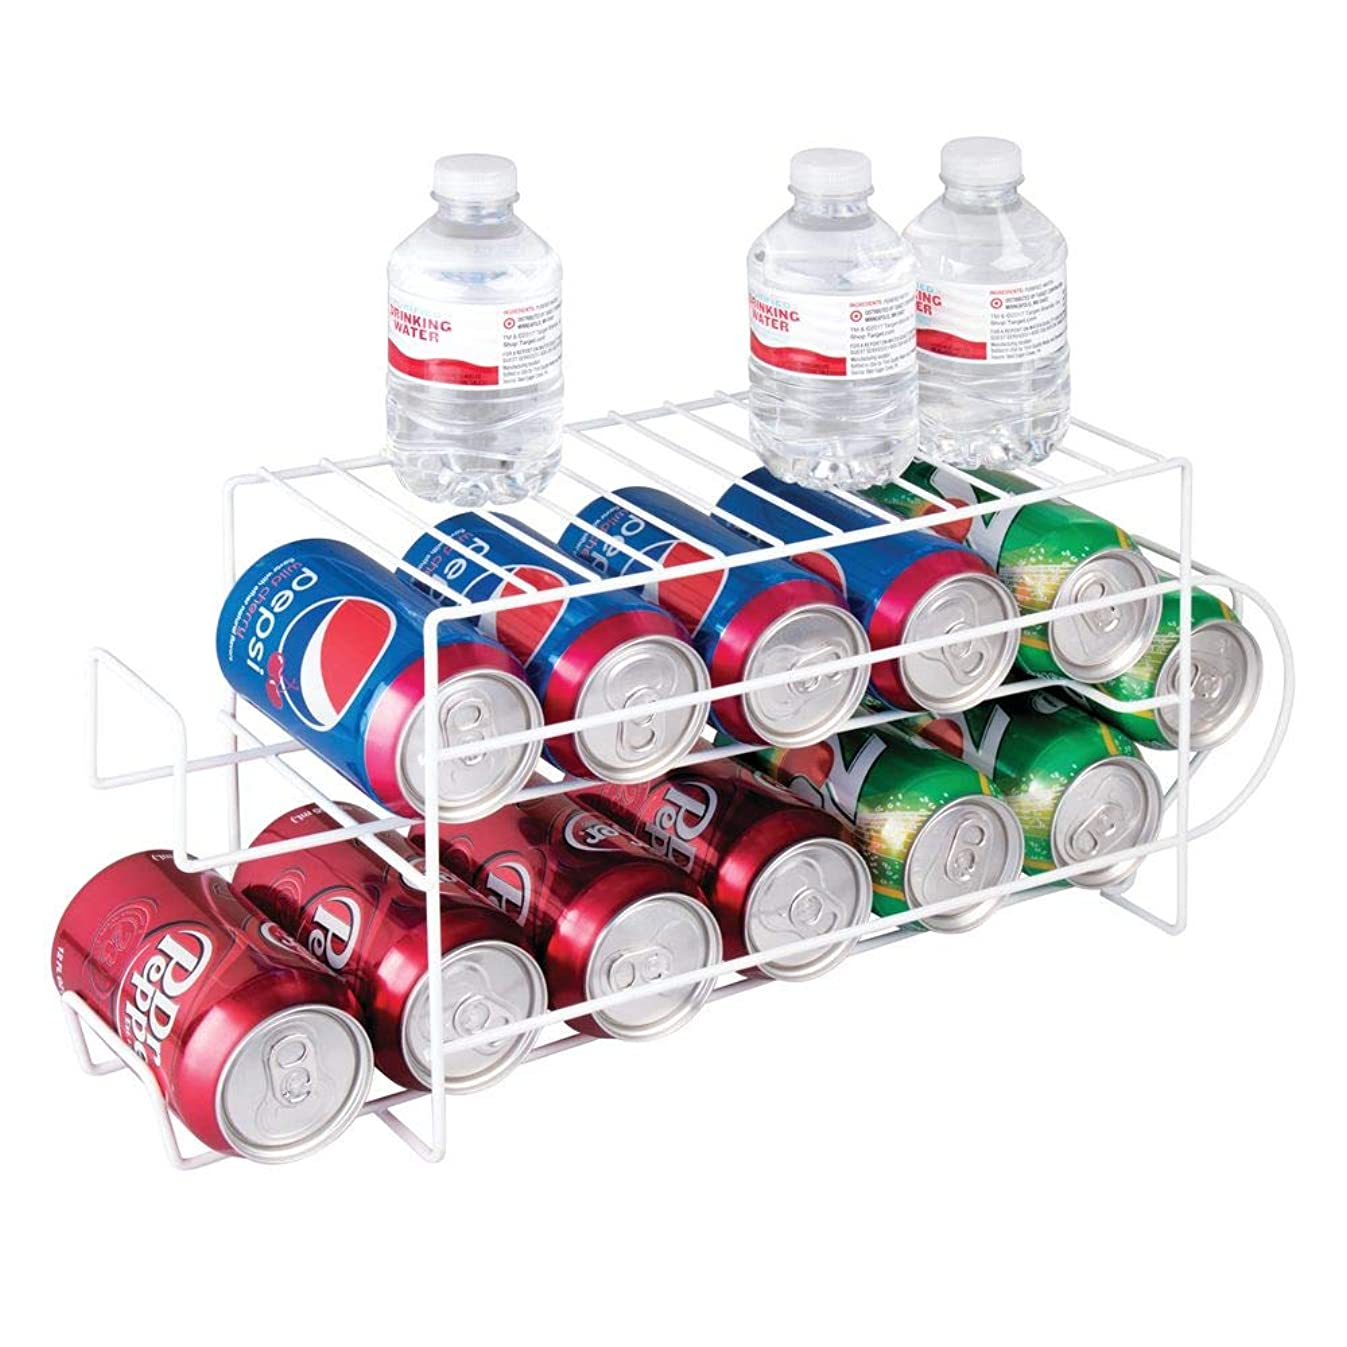 mDesign 2-Tier Metal Wire Standing Pop/Soda and Food Can Dispenser Storage Rack Organizer with Top Shelf for Kitchen Pantry, Countertop, Cabinet - Holds 12 Cans - White